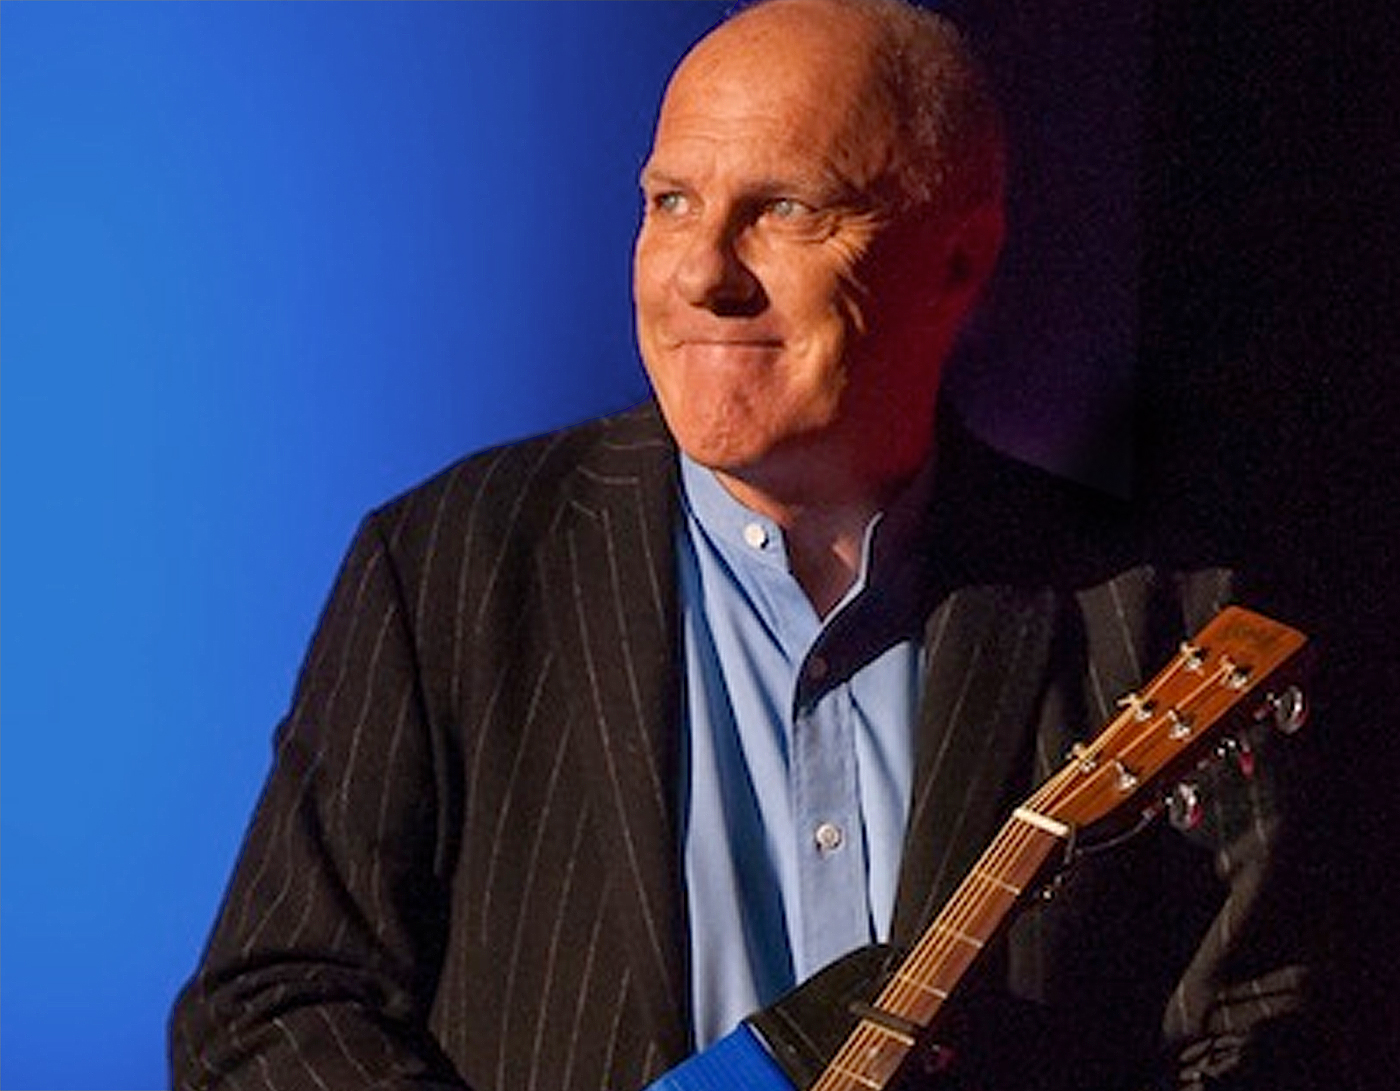 Richard Digance - Not Bad For His Age Tour 2018